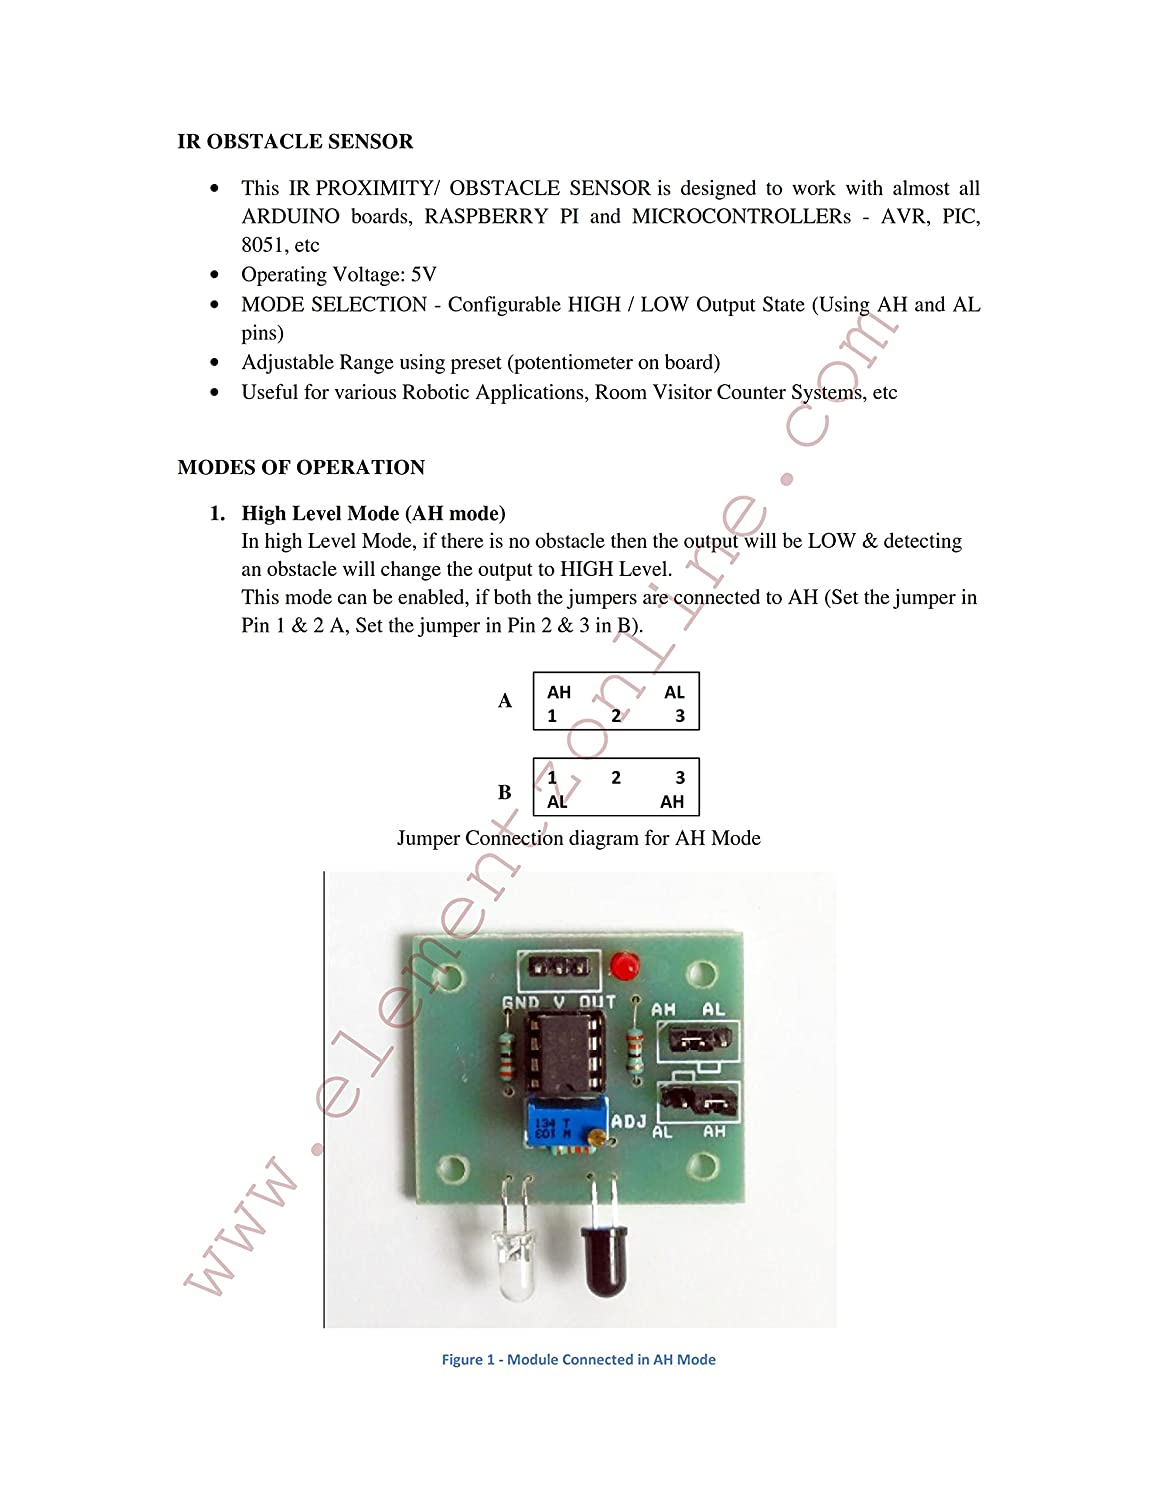 Elementz Engineers Guild Pvt Ltd Ir Obstacle Sensor Module Looking 4 Simple Circuit For Detection Infrared Proximity Detector With High Low Output Mode Selection